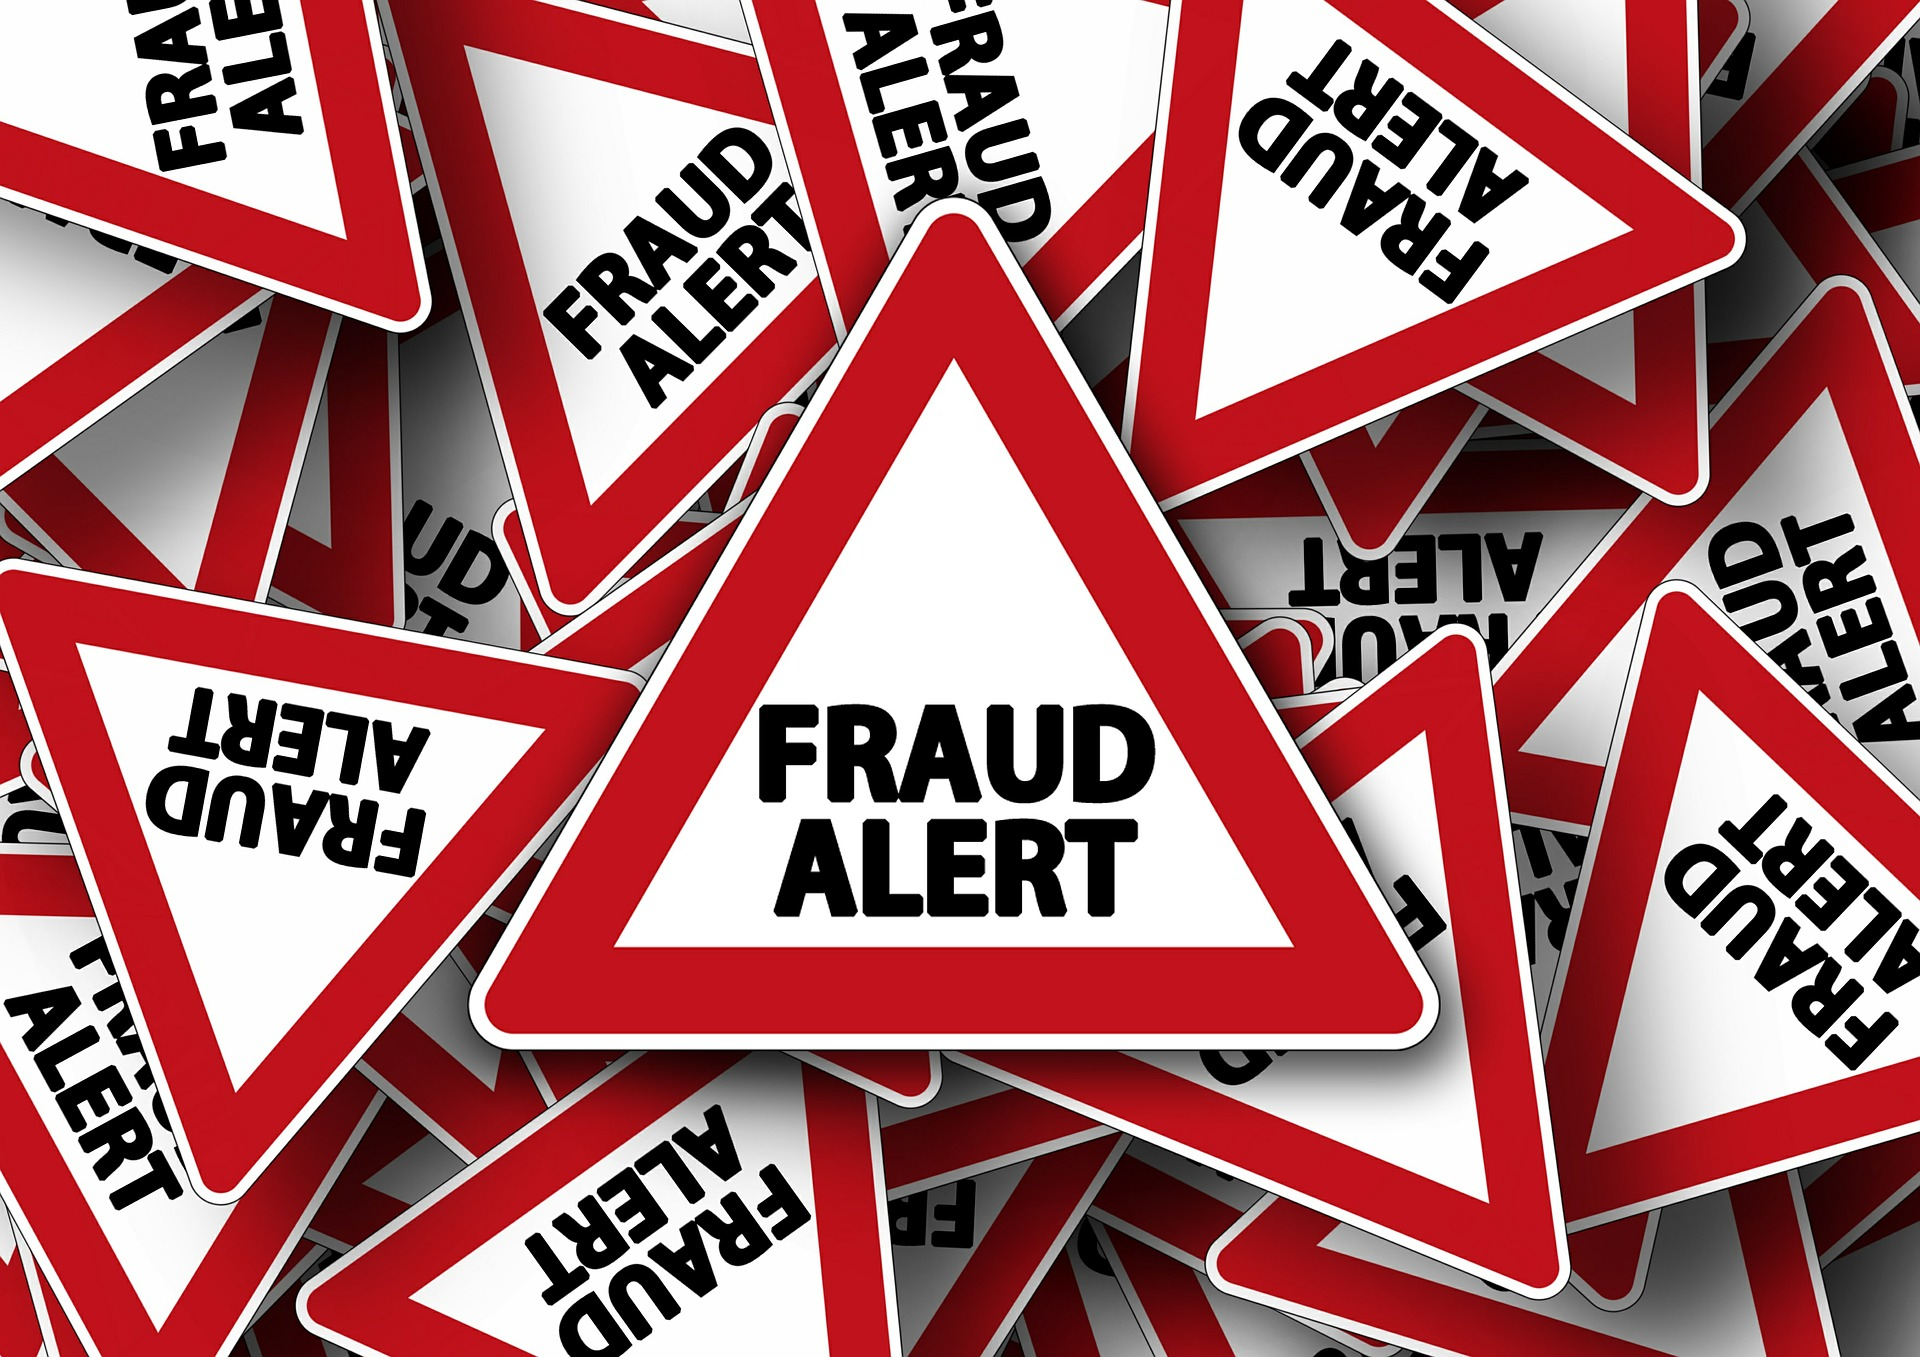 Beware of scam phone calls claiming to be from the Australian Tax Office